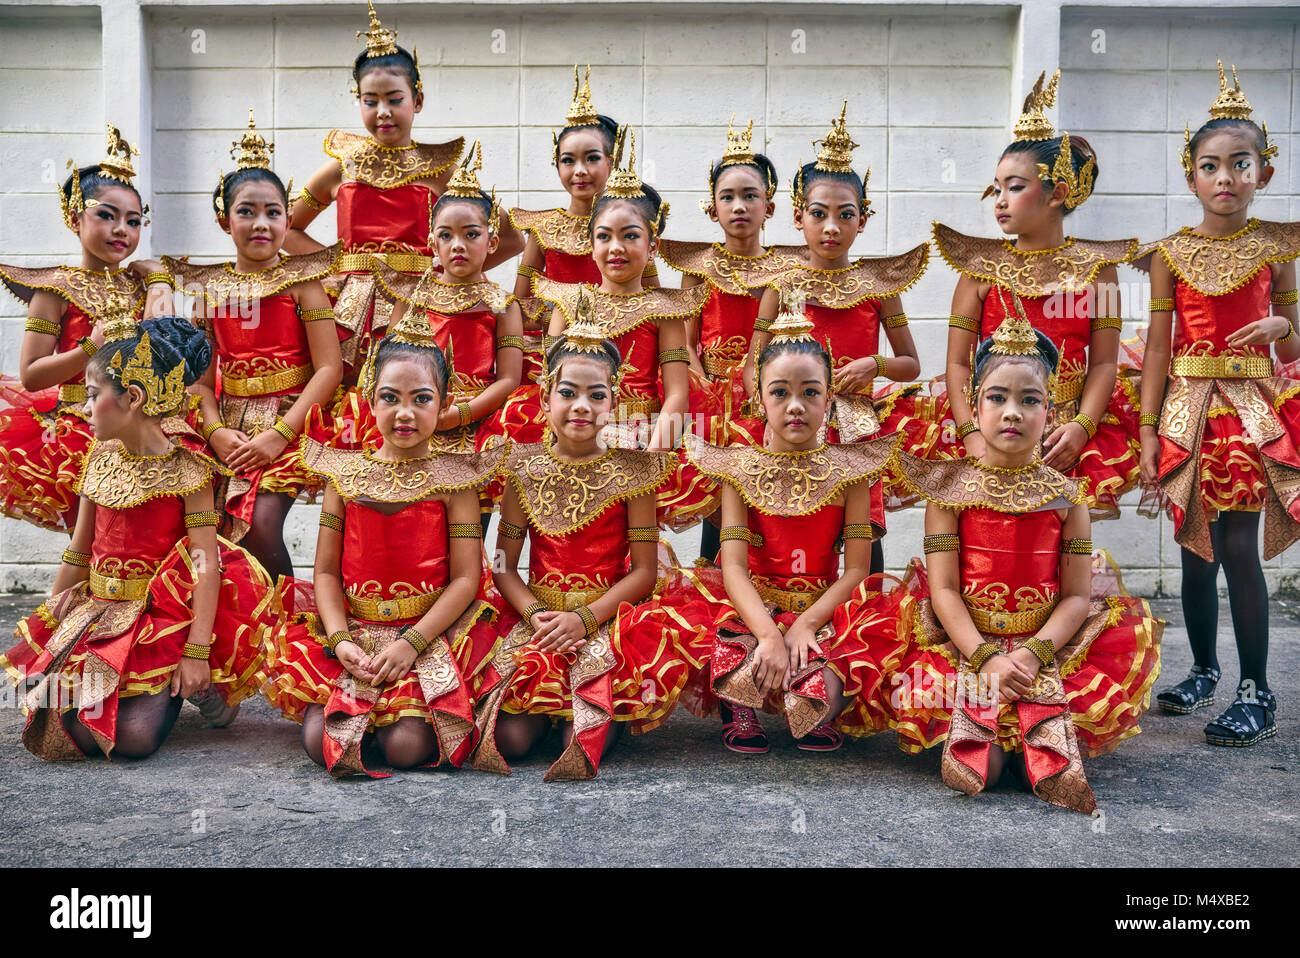 e574348d2 Group of young Thai dancers. Thailand dancing girls. Southeast Asia - Stock  Image